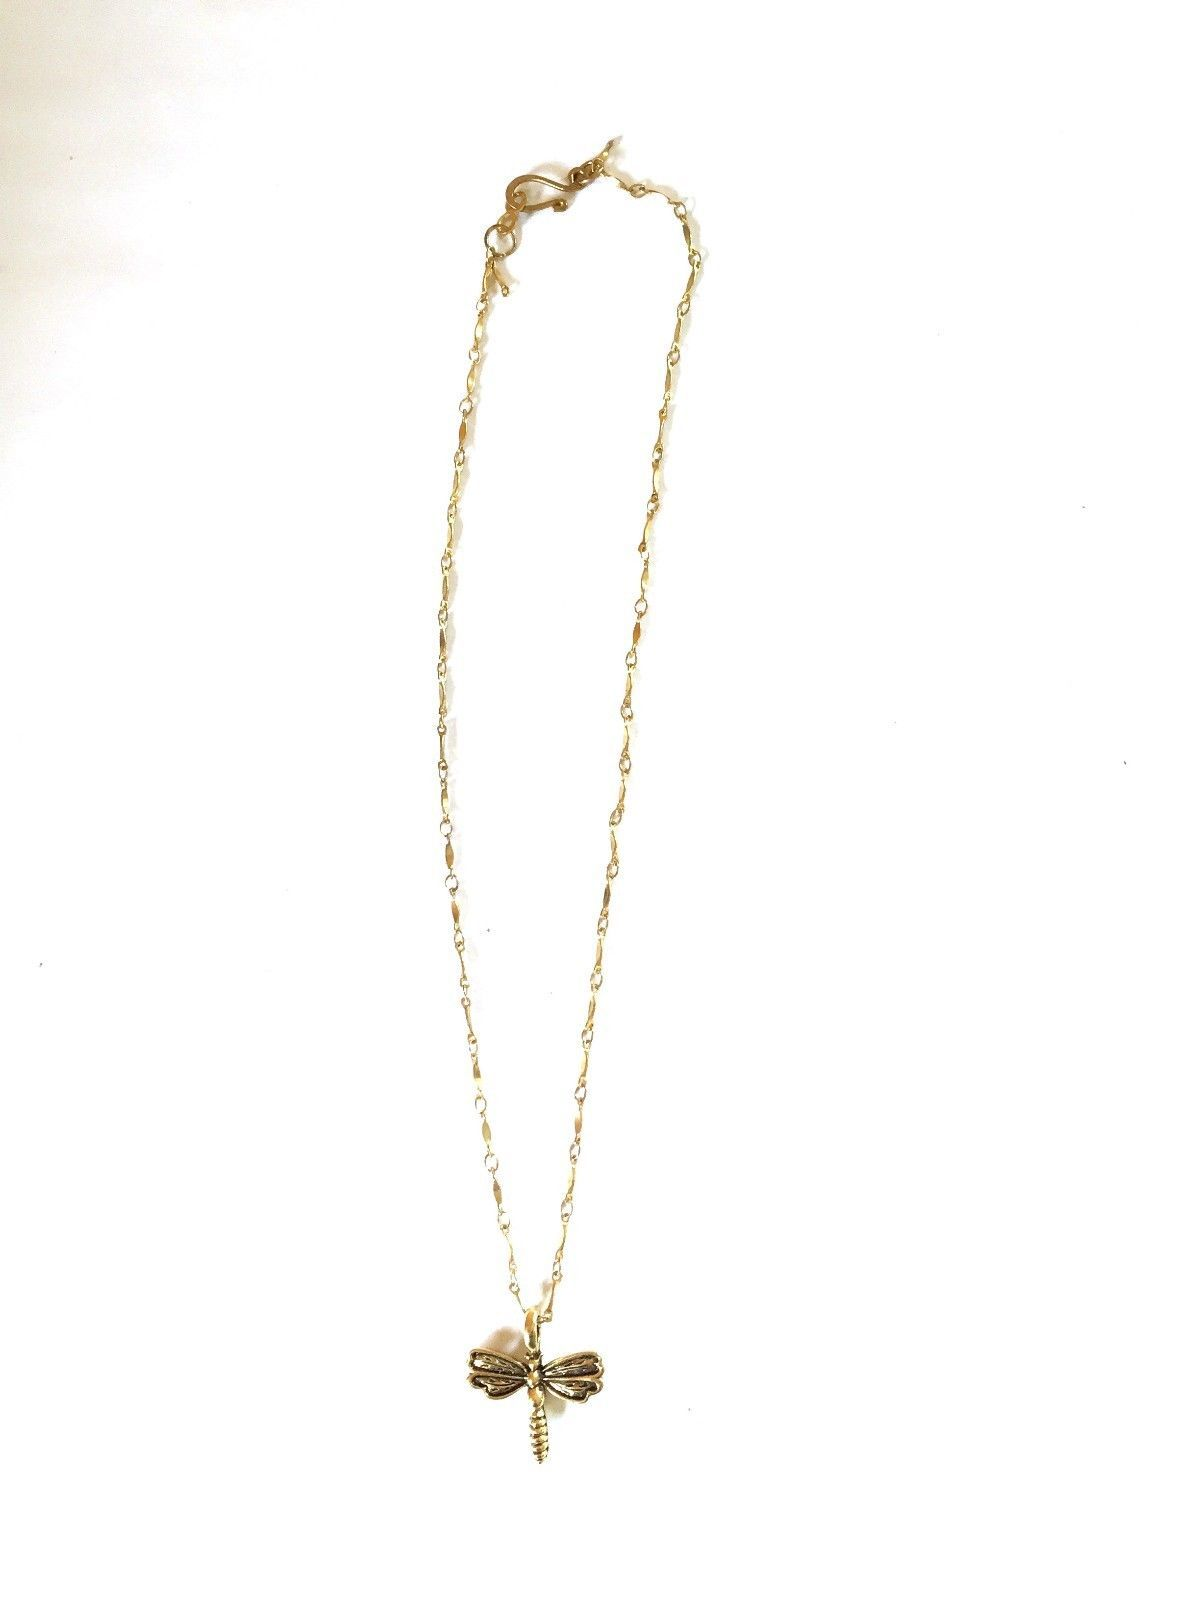 DragonFly Charm Necklace 16 inches Goldtone image 2